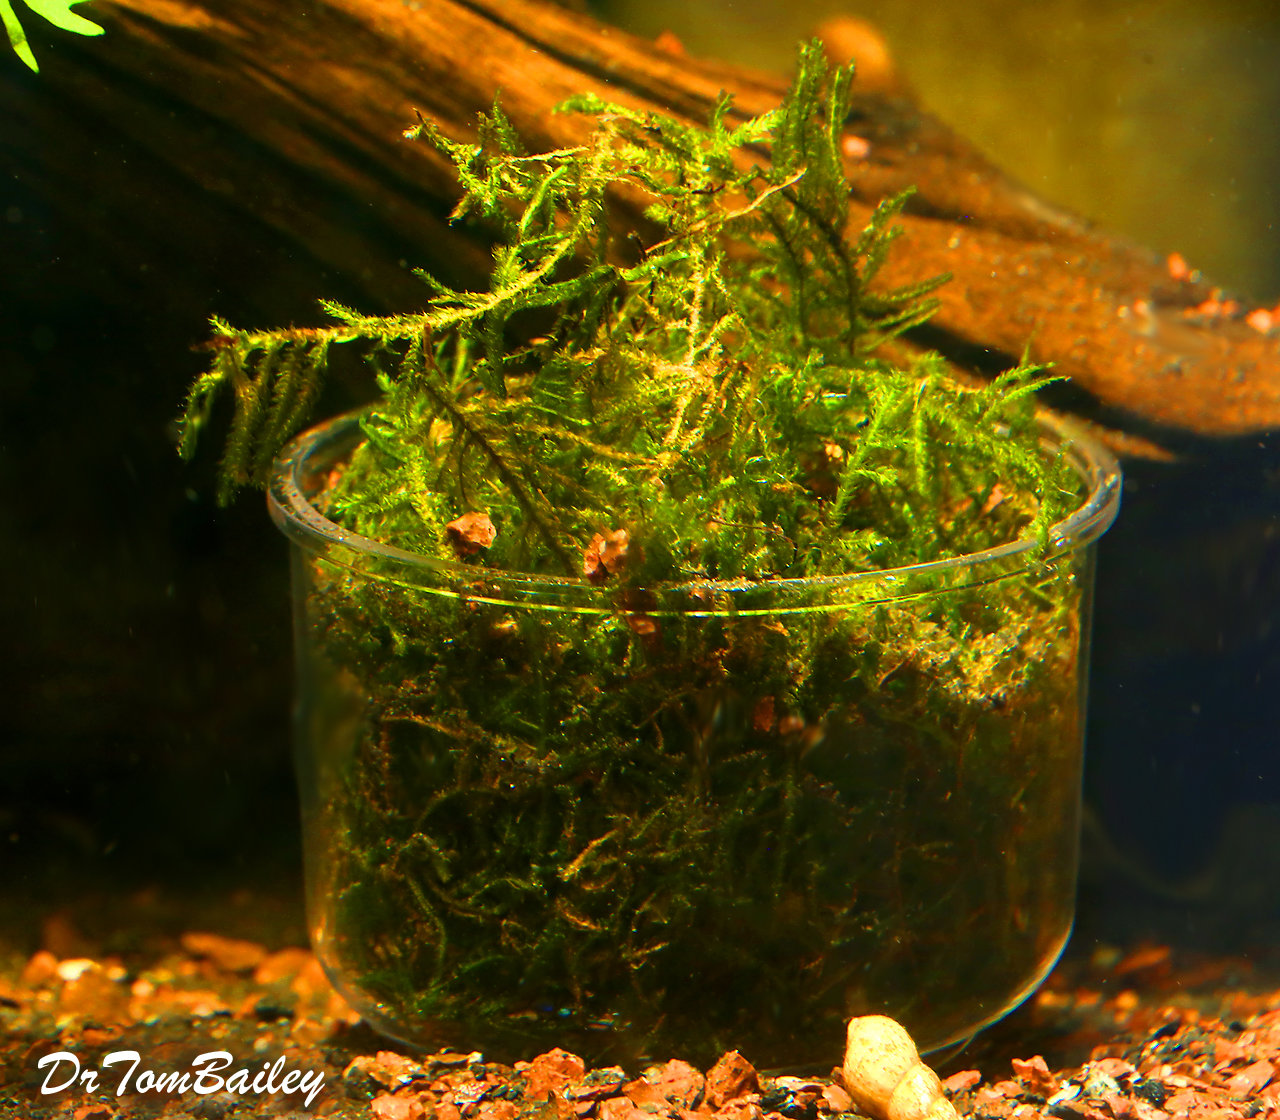 Premium Java Moss, Bunched Plant in a Cup